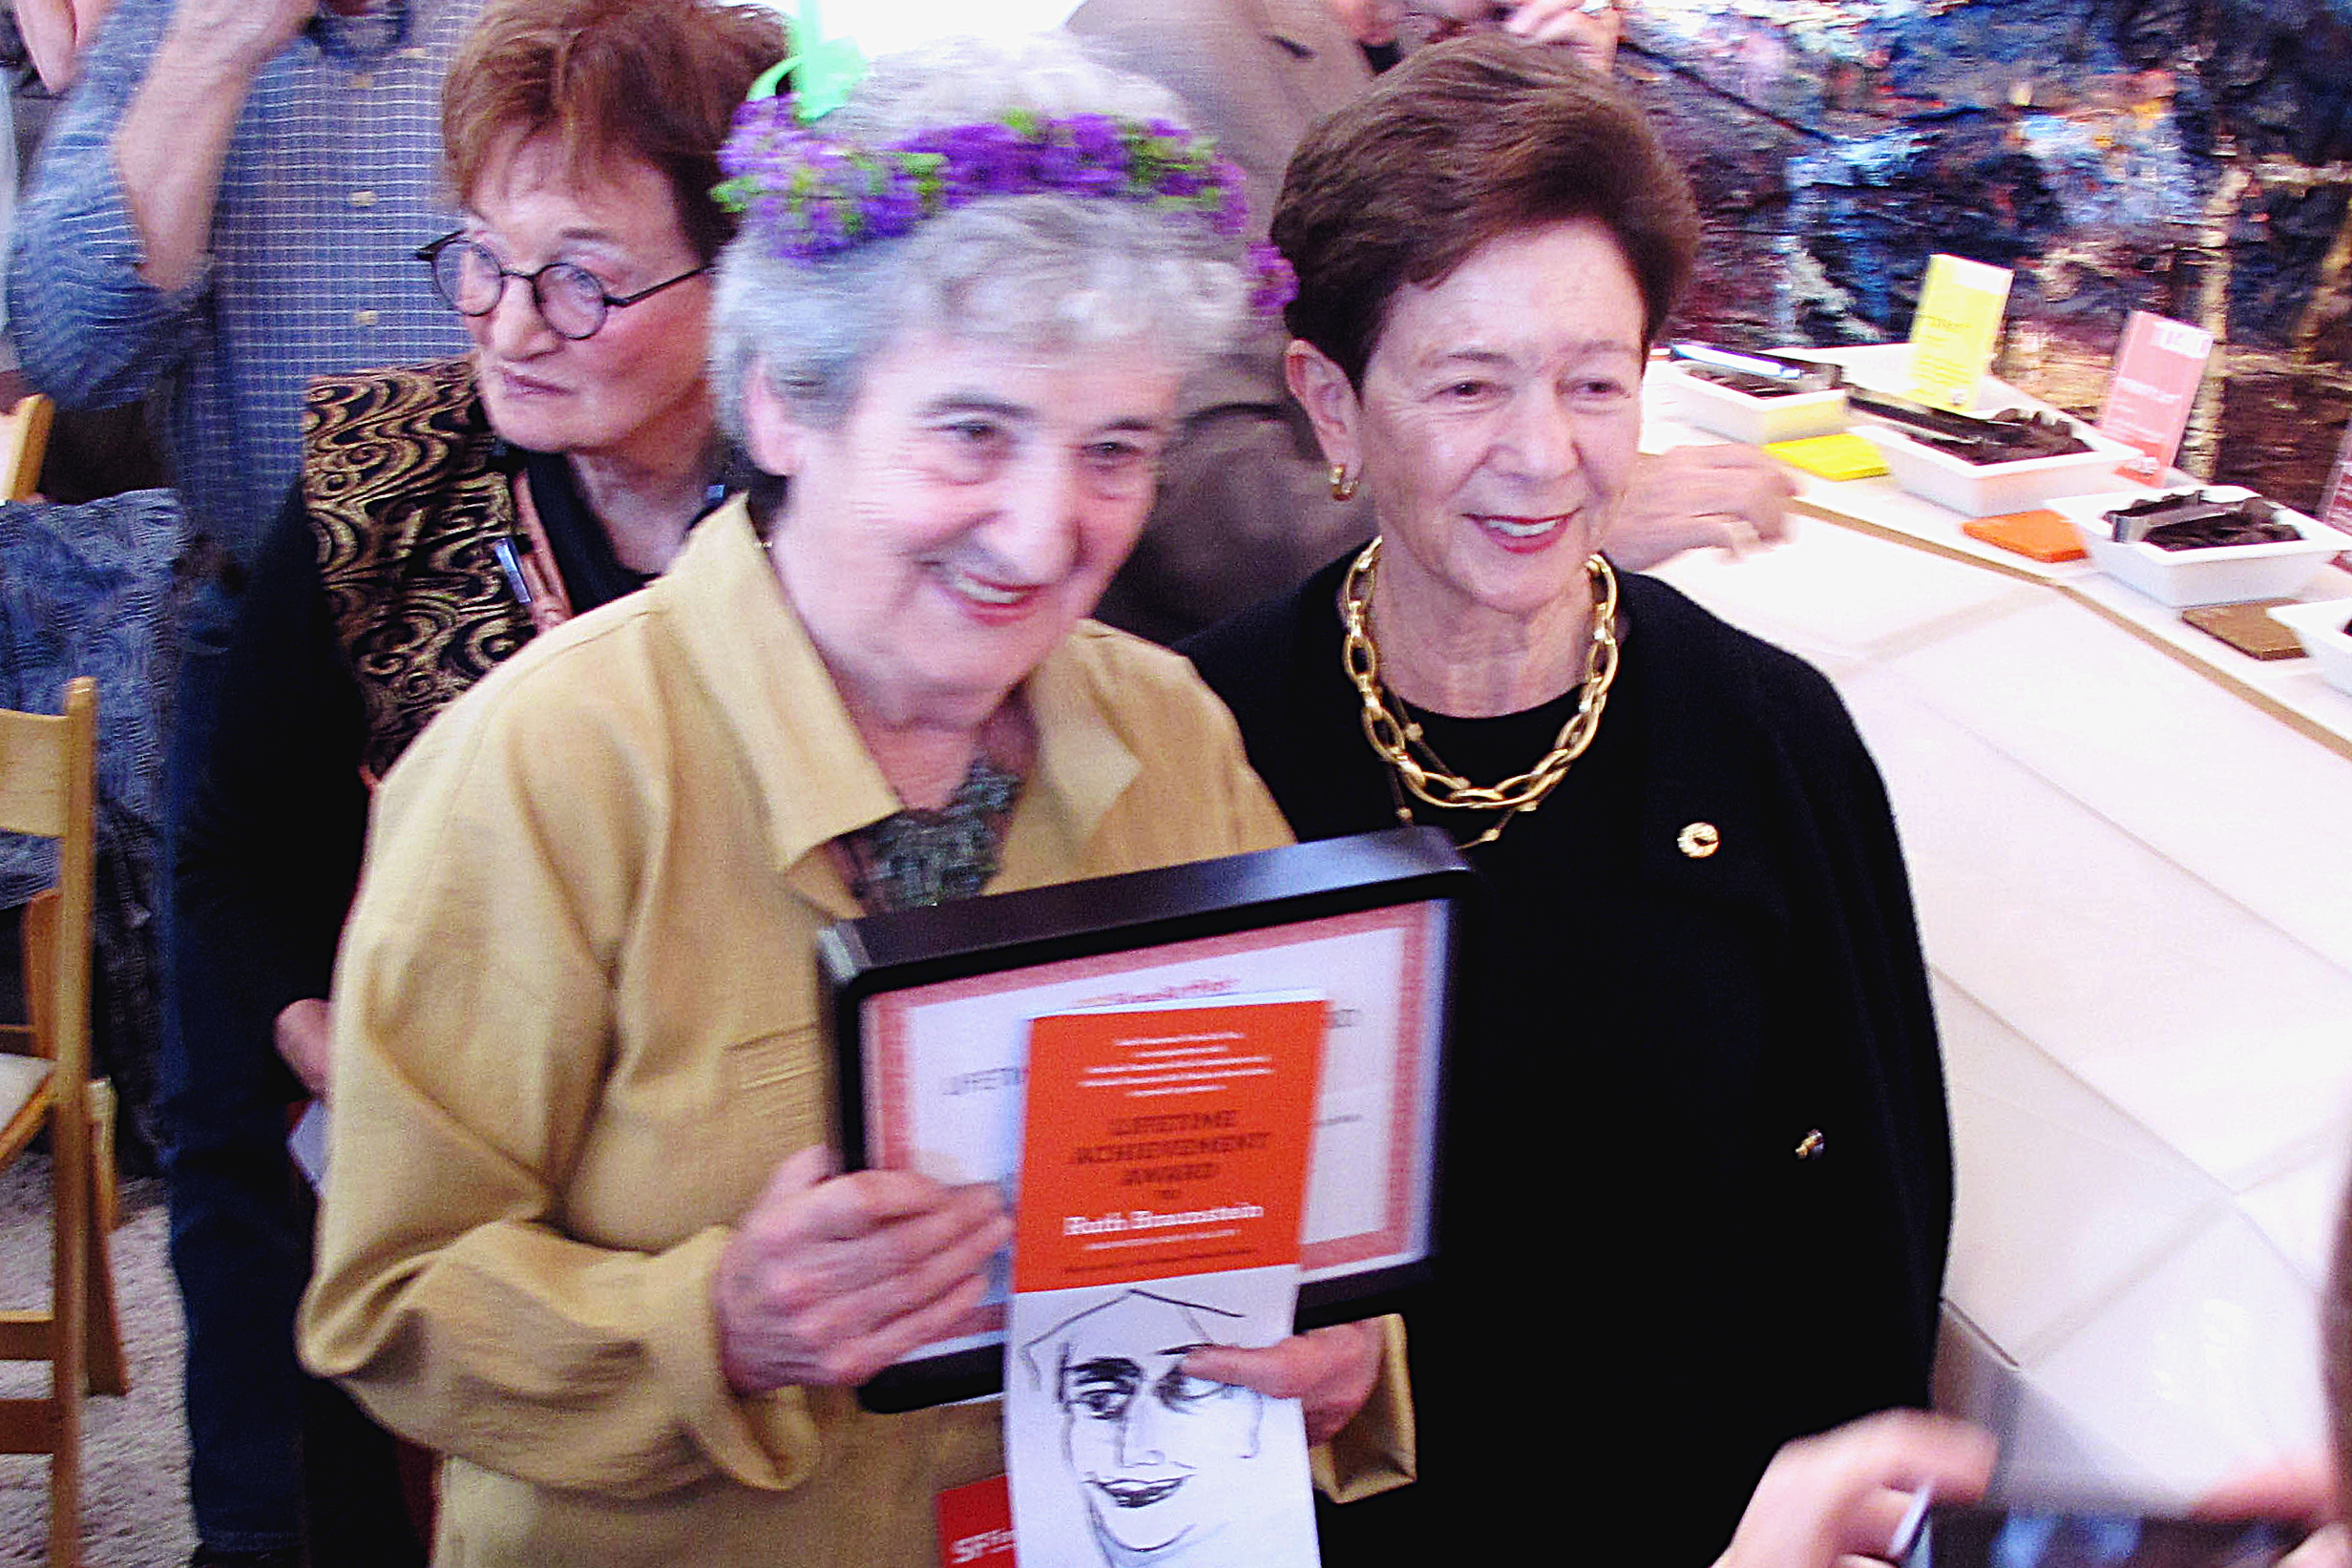 Cissie Swig with Ruth Braunstein receiving ArtCare Lifetime Achievement Award, May 20th 2010.